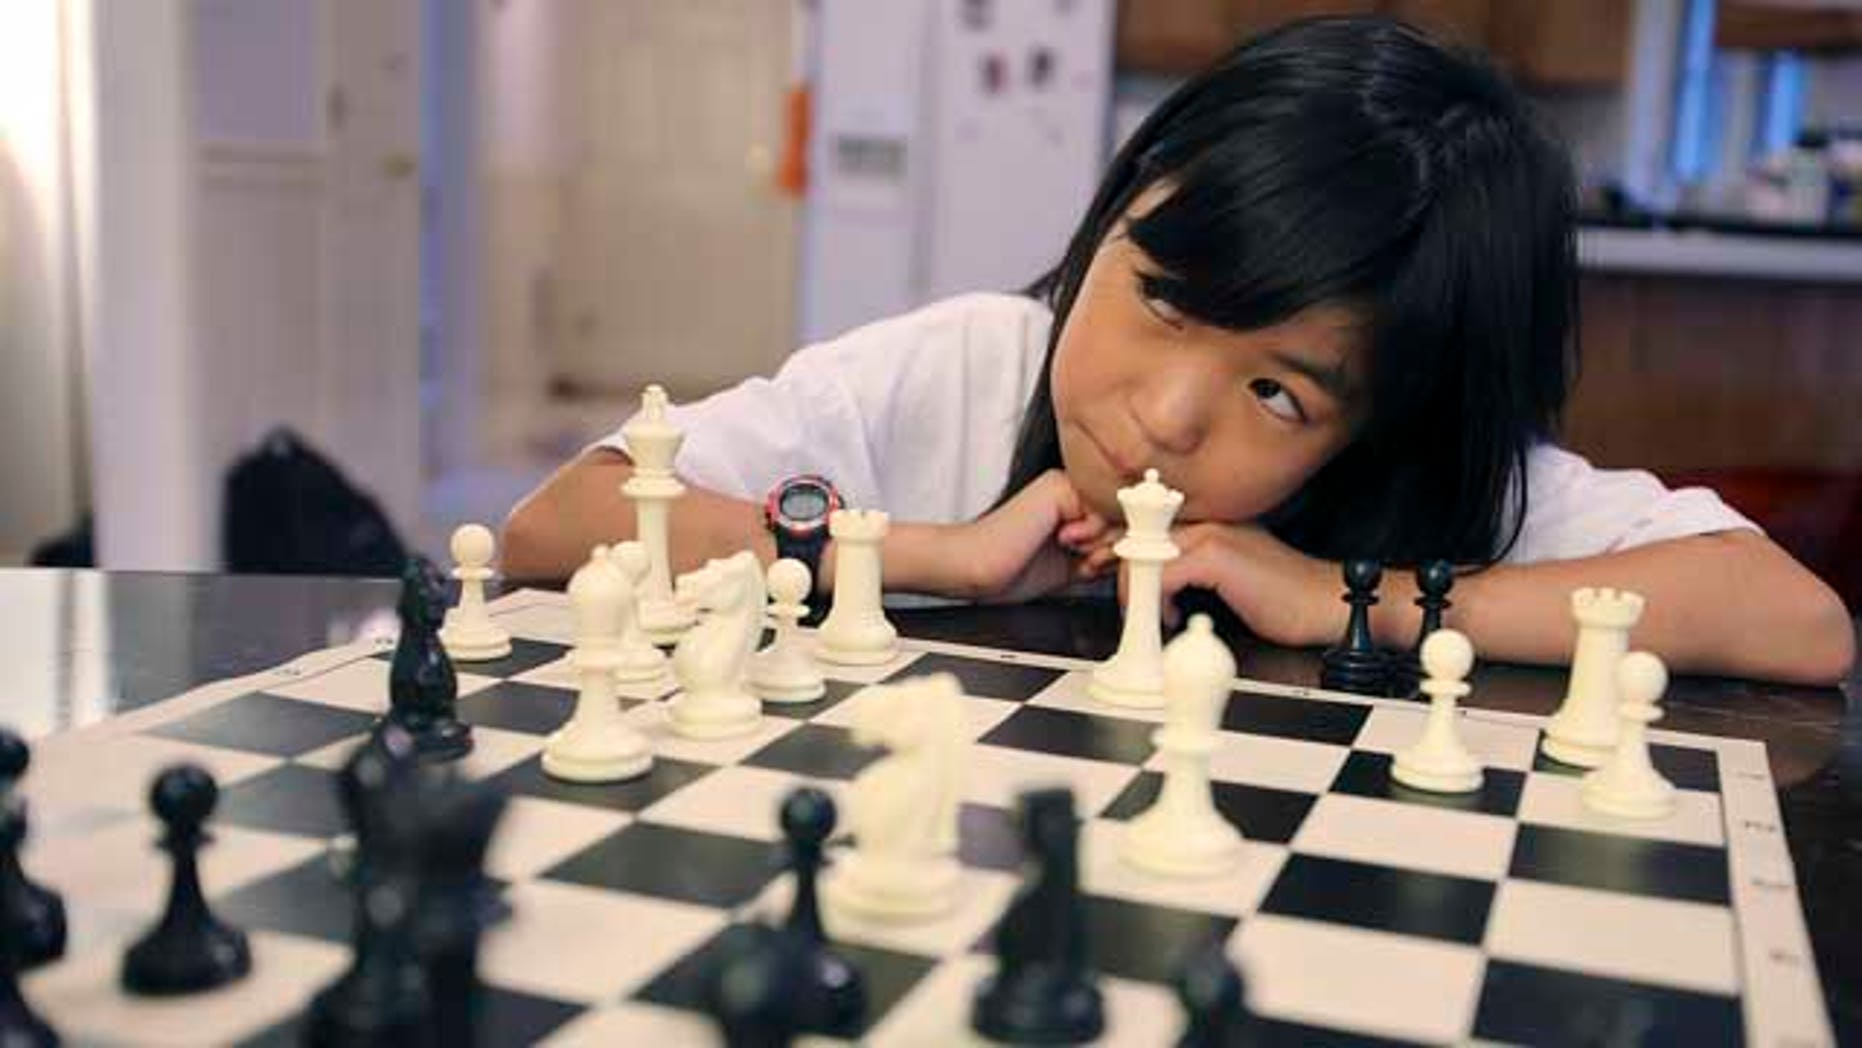 July 9, 2013: Carissa Yip, 9, waits for her father Percy Yip to make a move during a chess match at their home in Chelmsford, Mass.